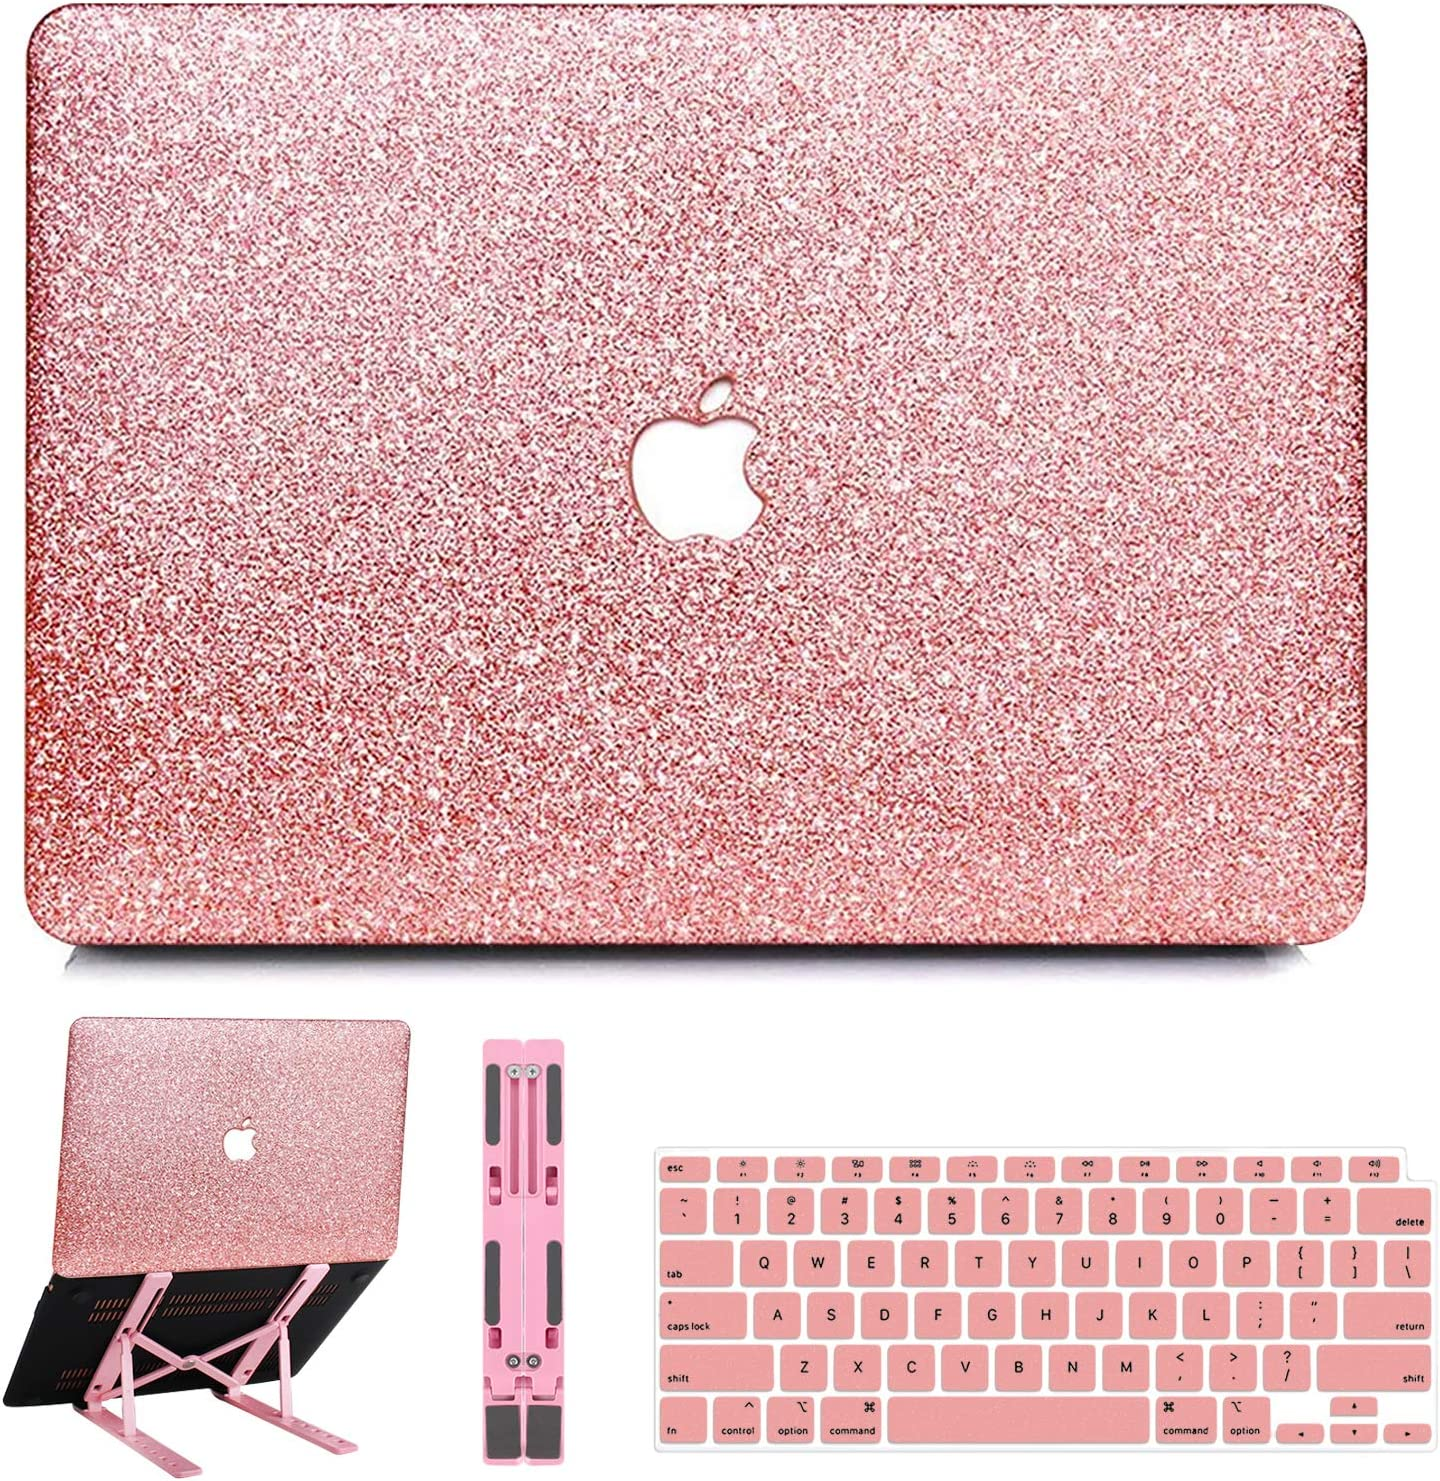 B BELK MacBook Air 13 inch Case 2020 2019 2018 Release M1 A2337 A2179 A1932 with Touch ID, Sparkly Leather Hard Shell Case with Keyboard Cover + Pink Laptop Stand, Apple MacBook Air 2020 Case Retina